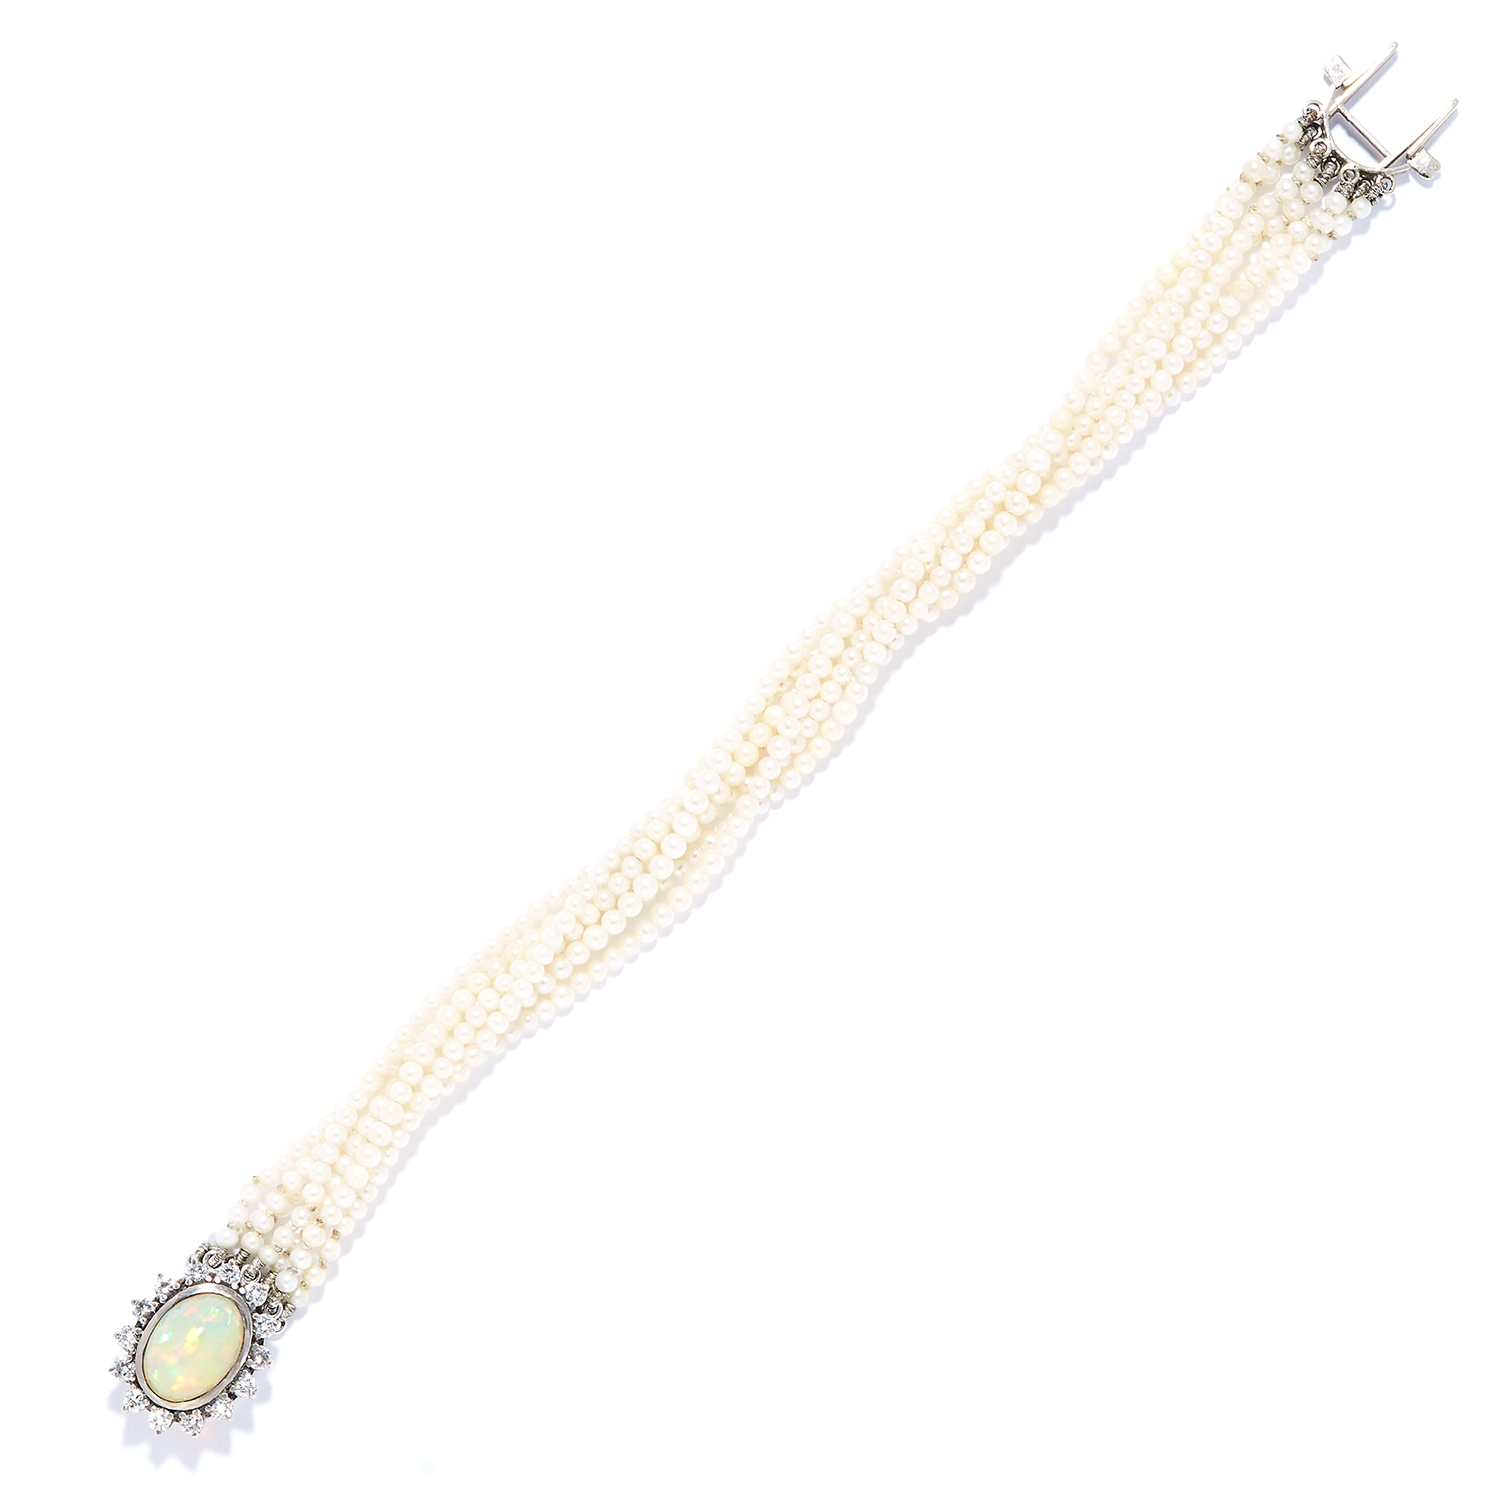 PEARL, OPAL AND DIAMOND BRACELET in white gold or platinum, comprising of seven rows of pearls